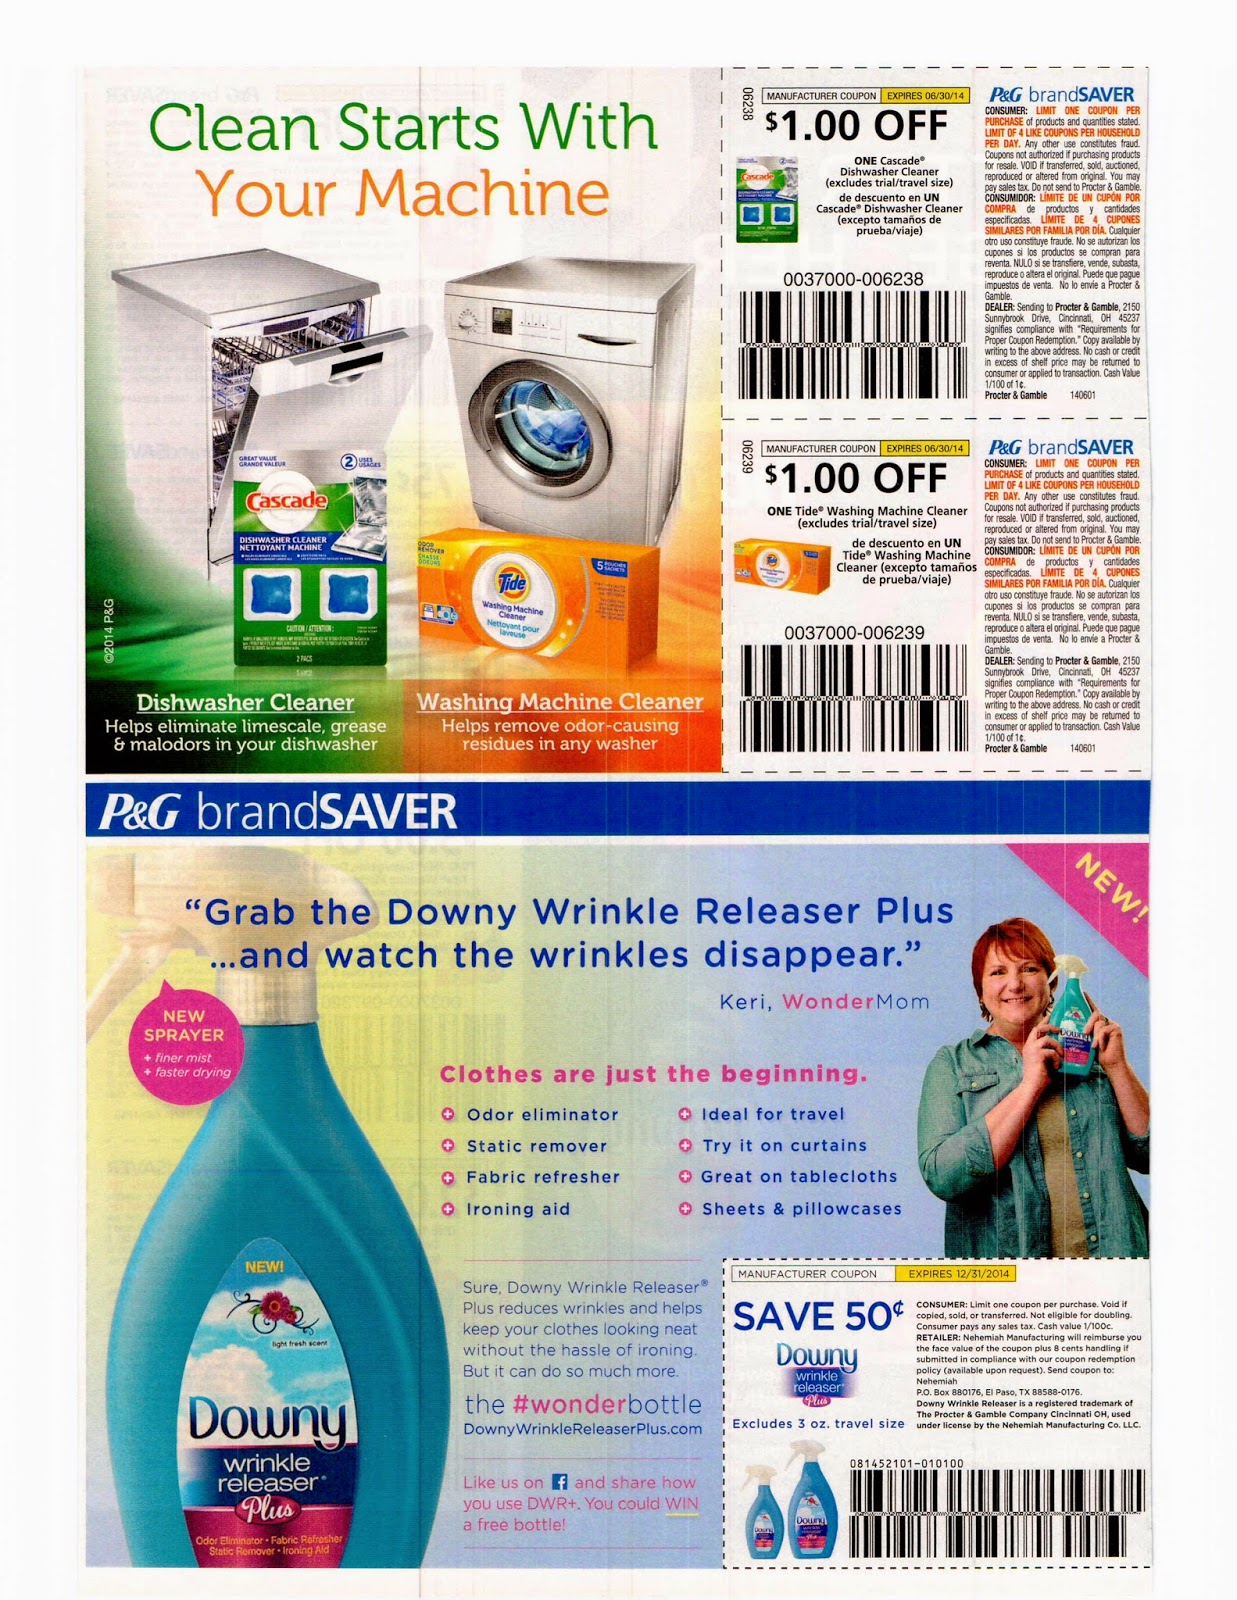 Proctor and gamble coupons